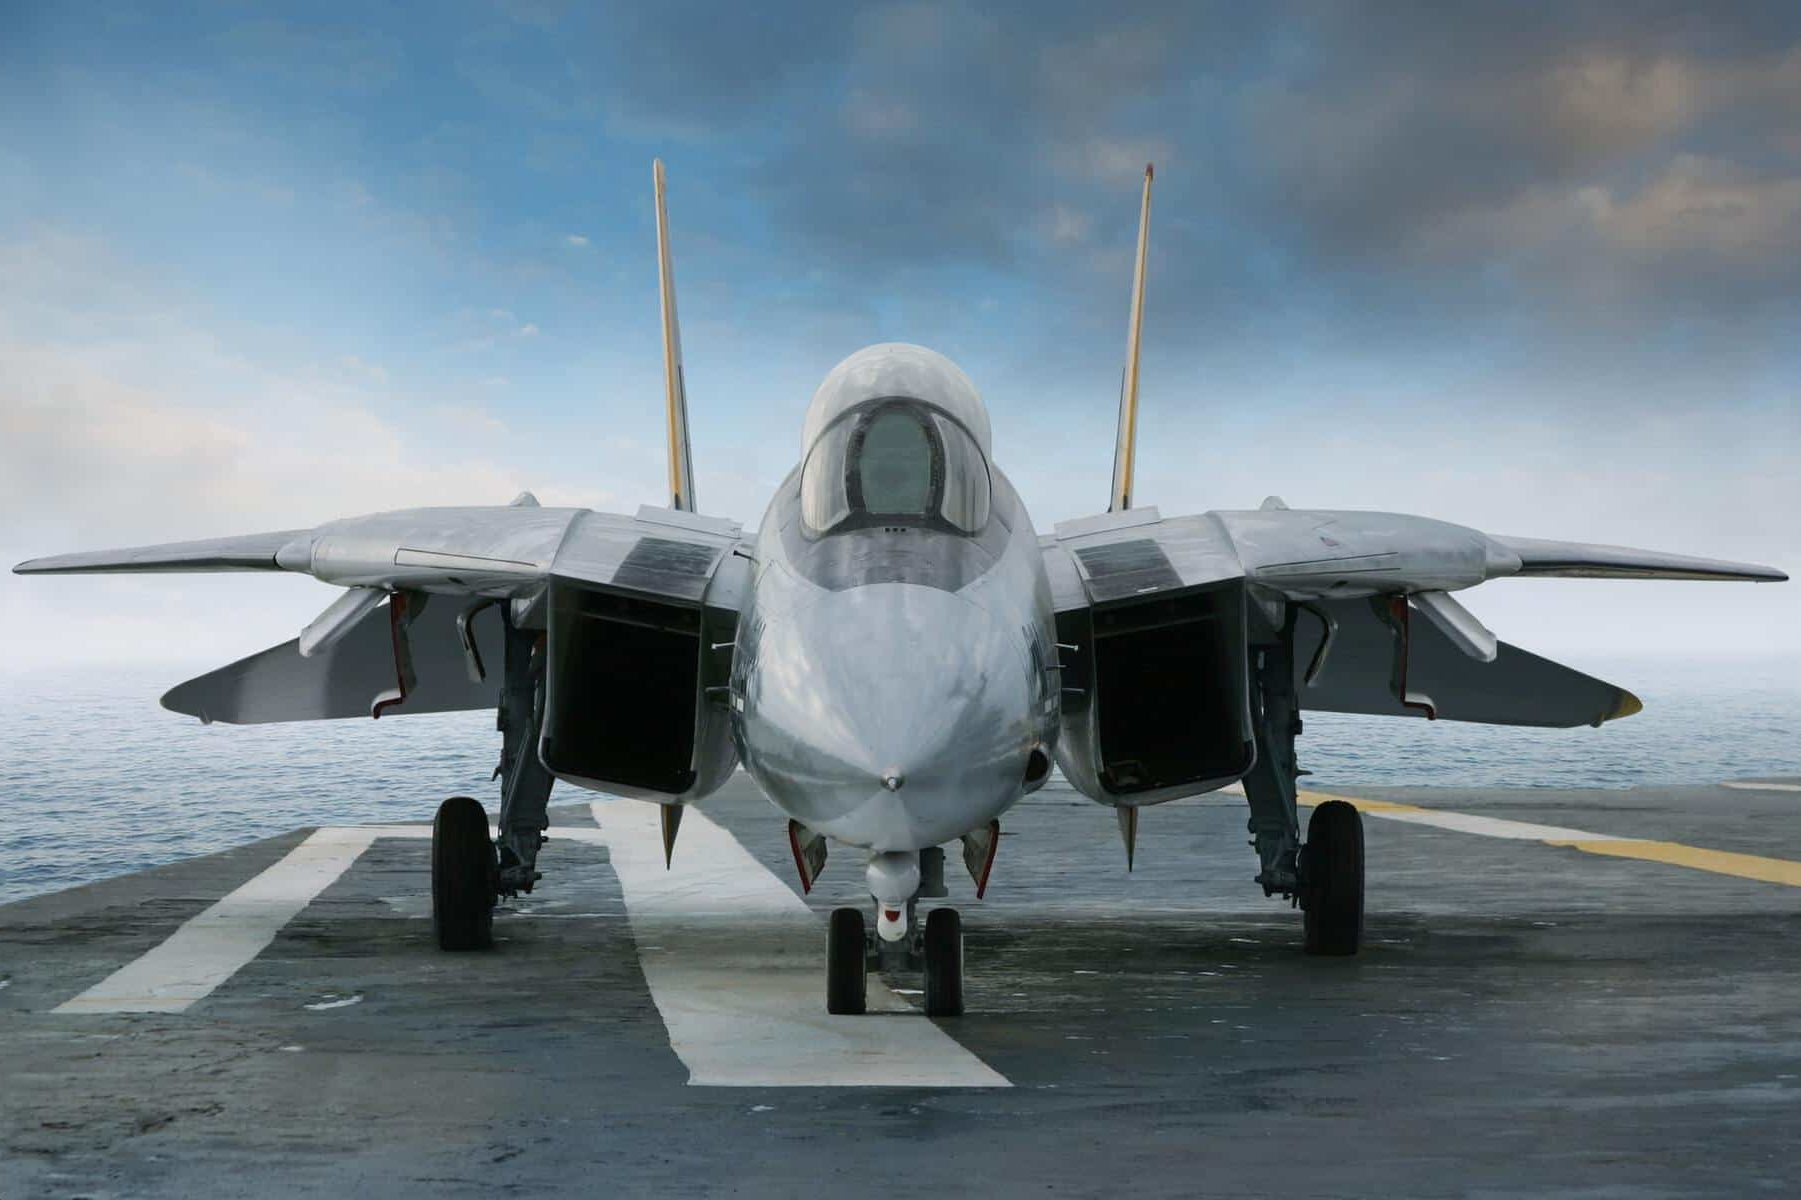 F-14 Tomcat Fighter on the Deck of a Carrier